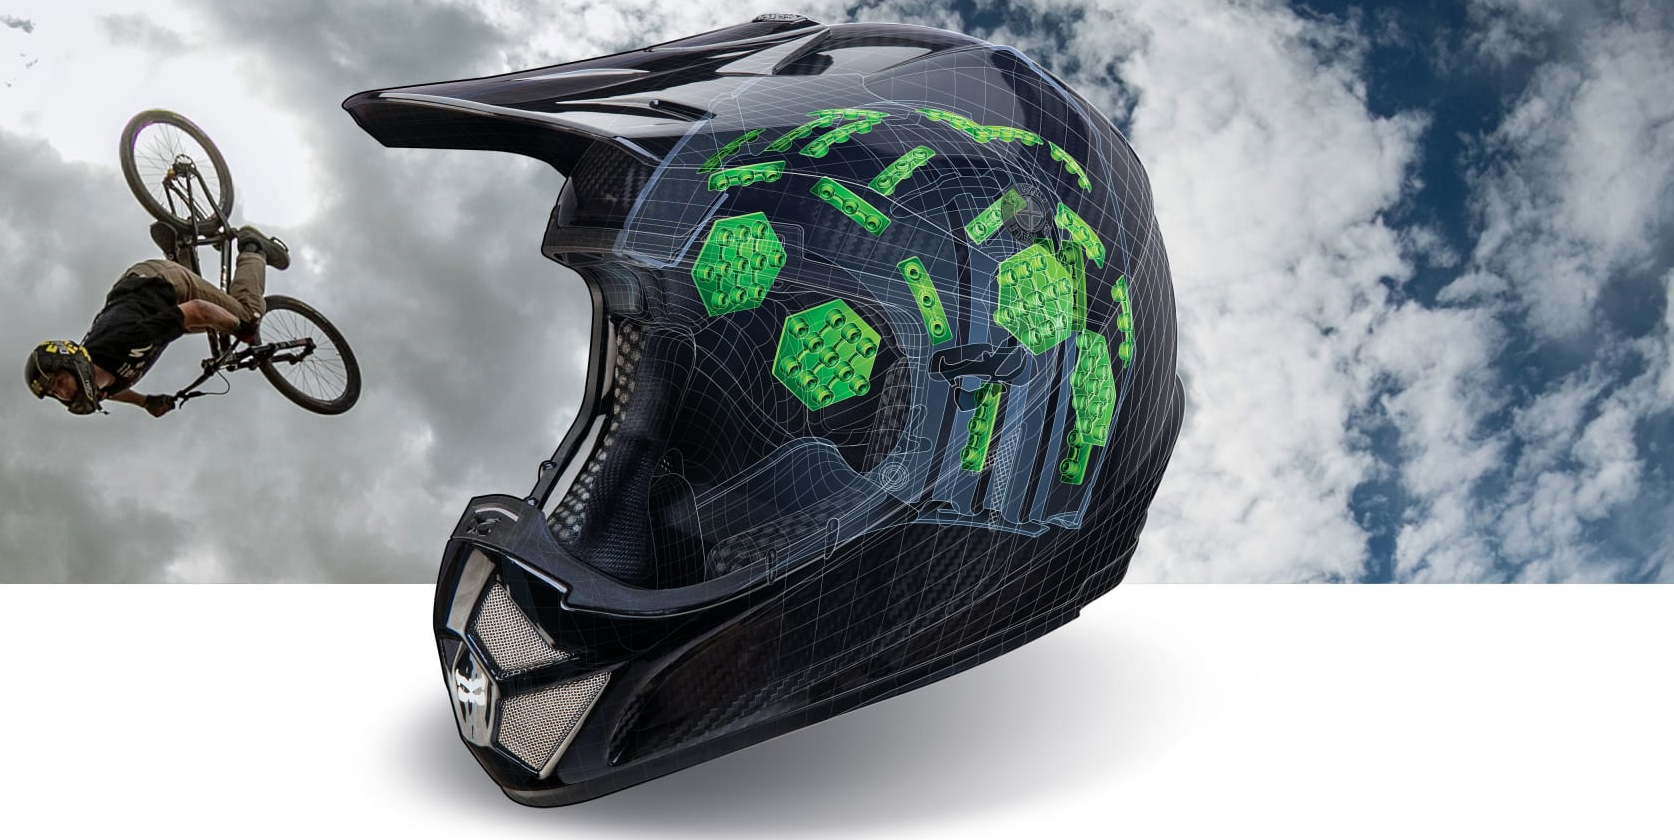 eed9e152136 A new twist on rotational force reduction with Armourgel, used by Kali and  the new Leatt Enduro 3.0. Image: KaliProtectives